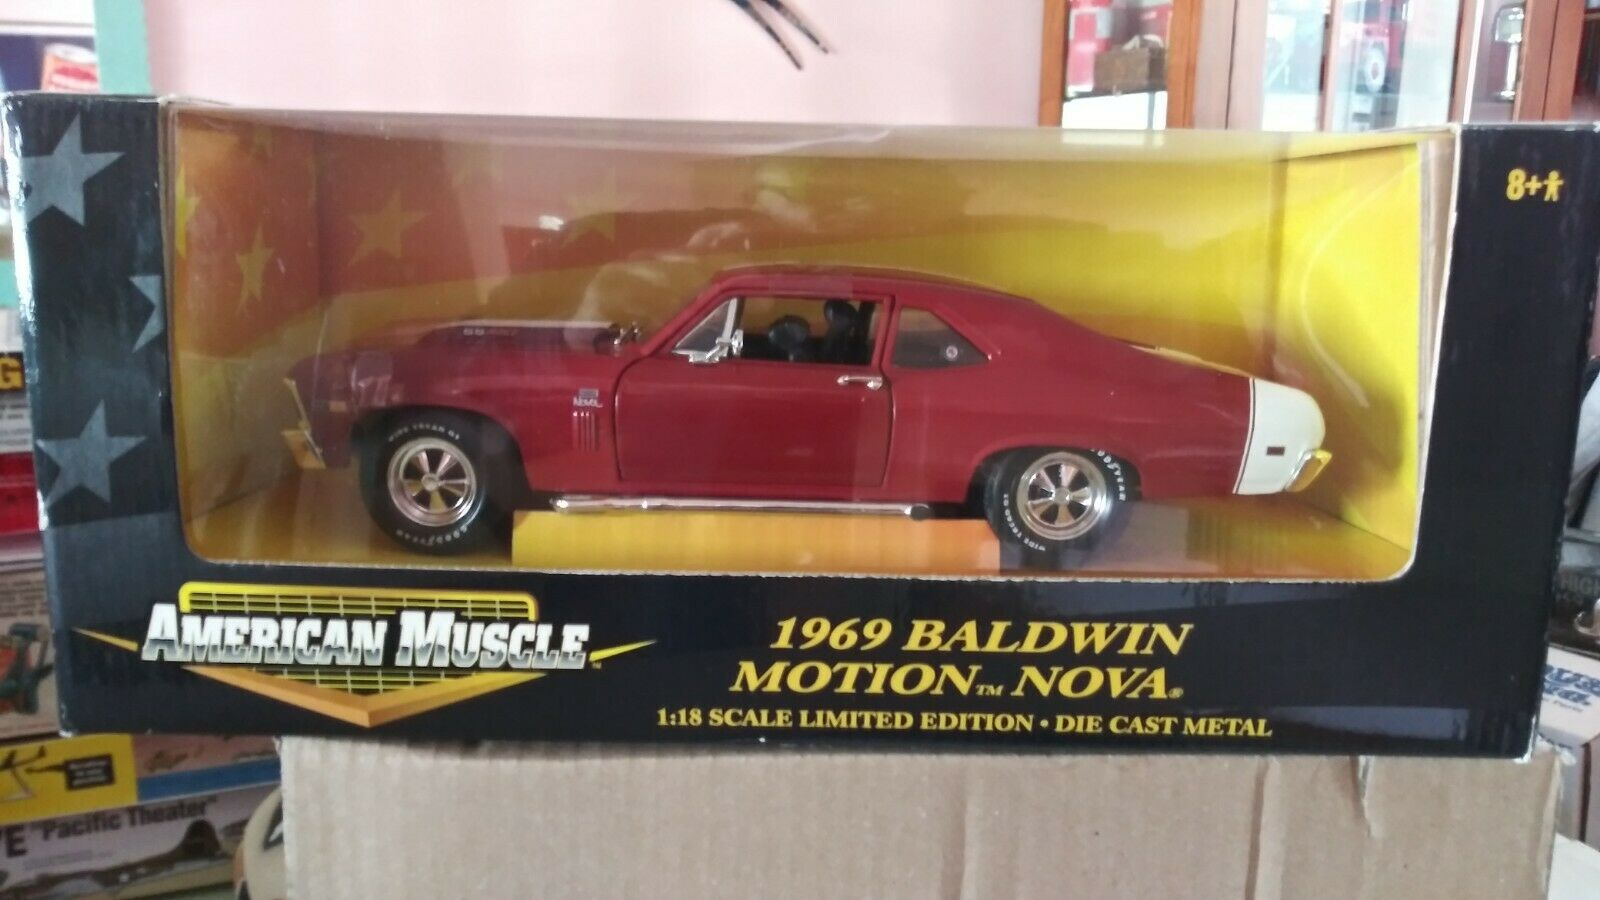 AMERICAN MUSCLE 1 18 SCALE 1969 RED BALDWIN MOTION CAMARO DIECAST CAR